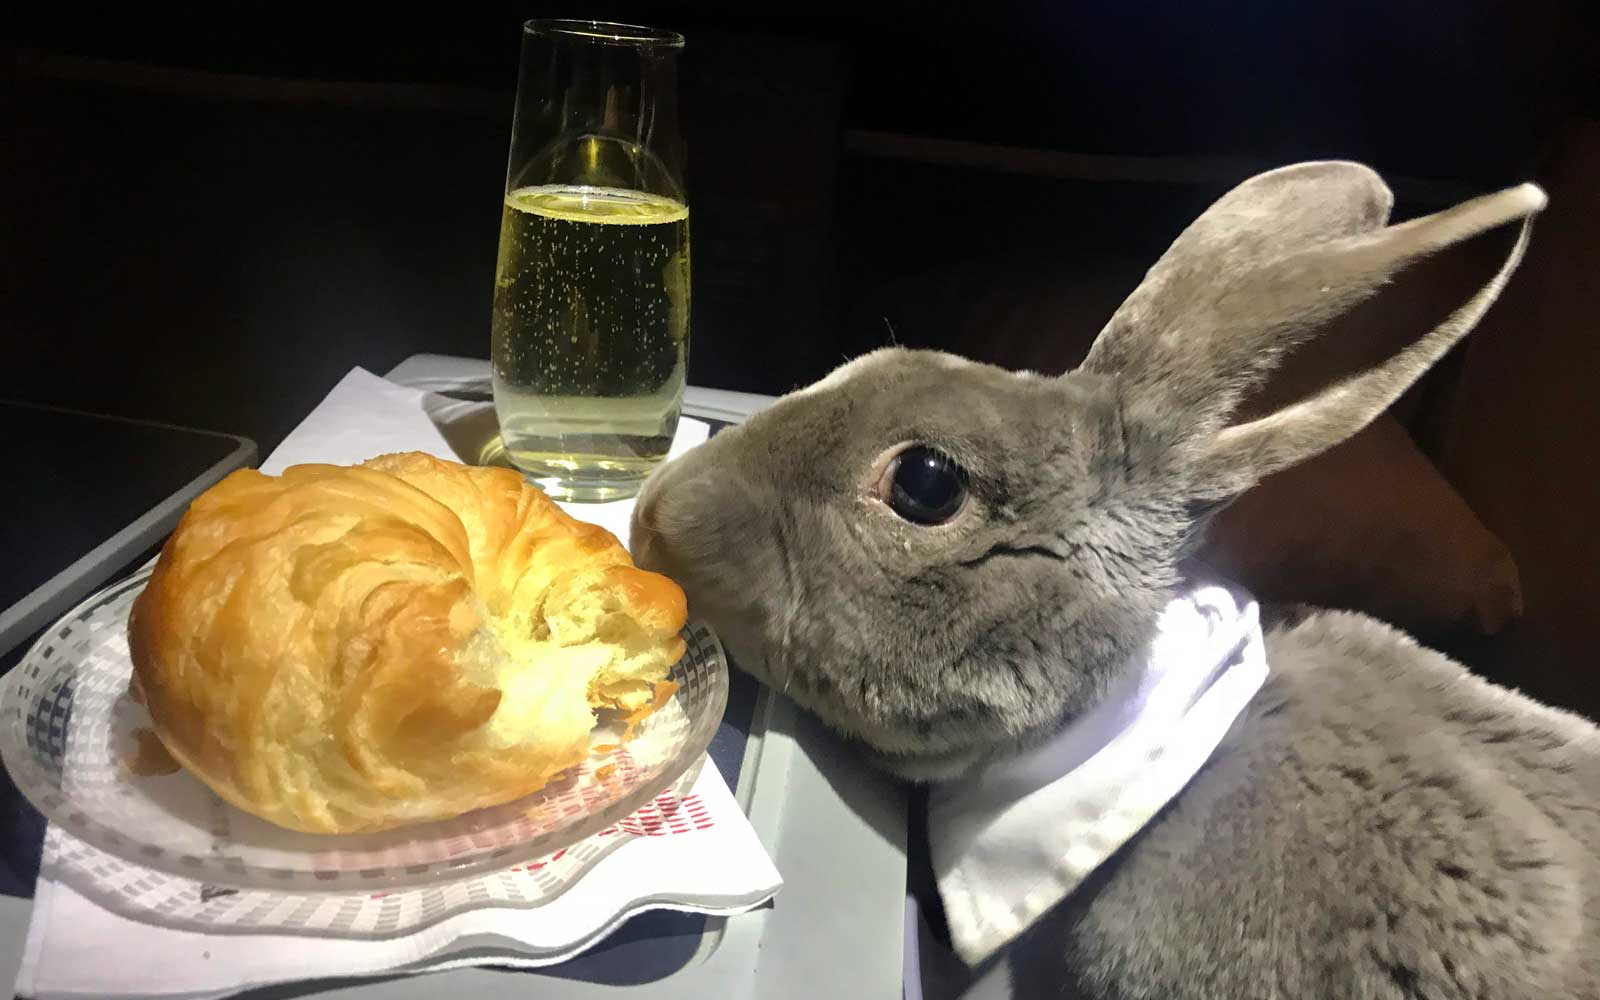 Coco, the business class bunny, enjoys a croissant and champagne on the plane.